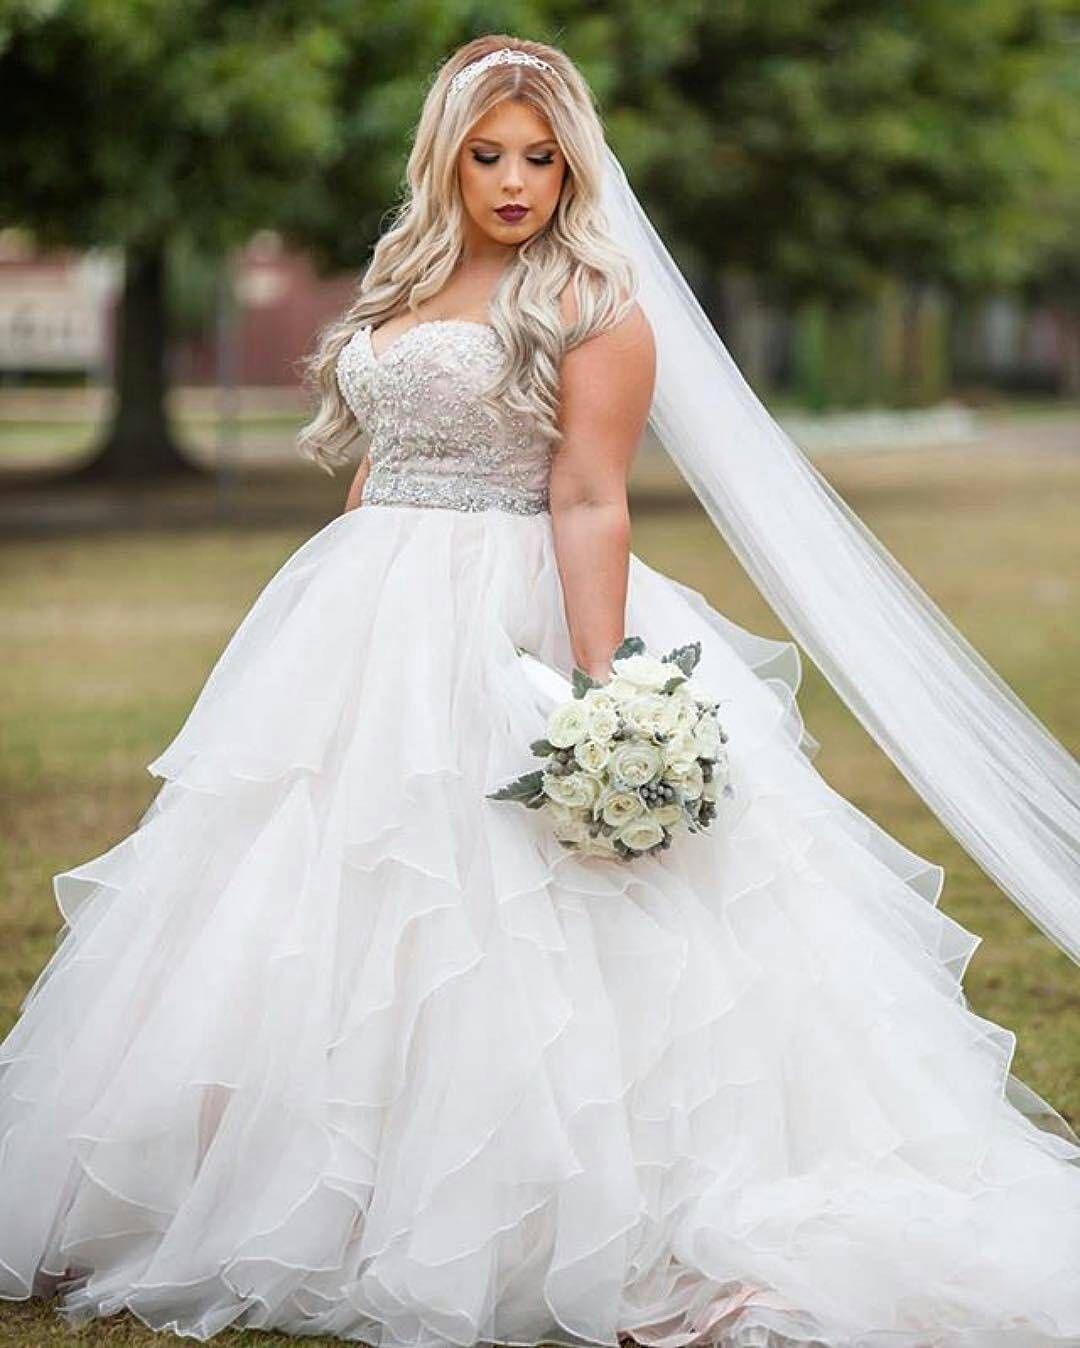 d3e11e3211e7 Strapless #plussizeweddingdresses with an empire waist like this one can be  easily recreated for #